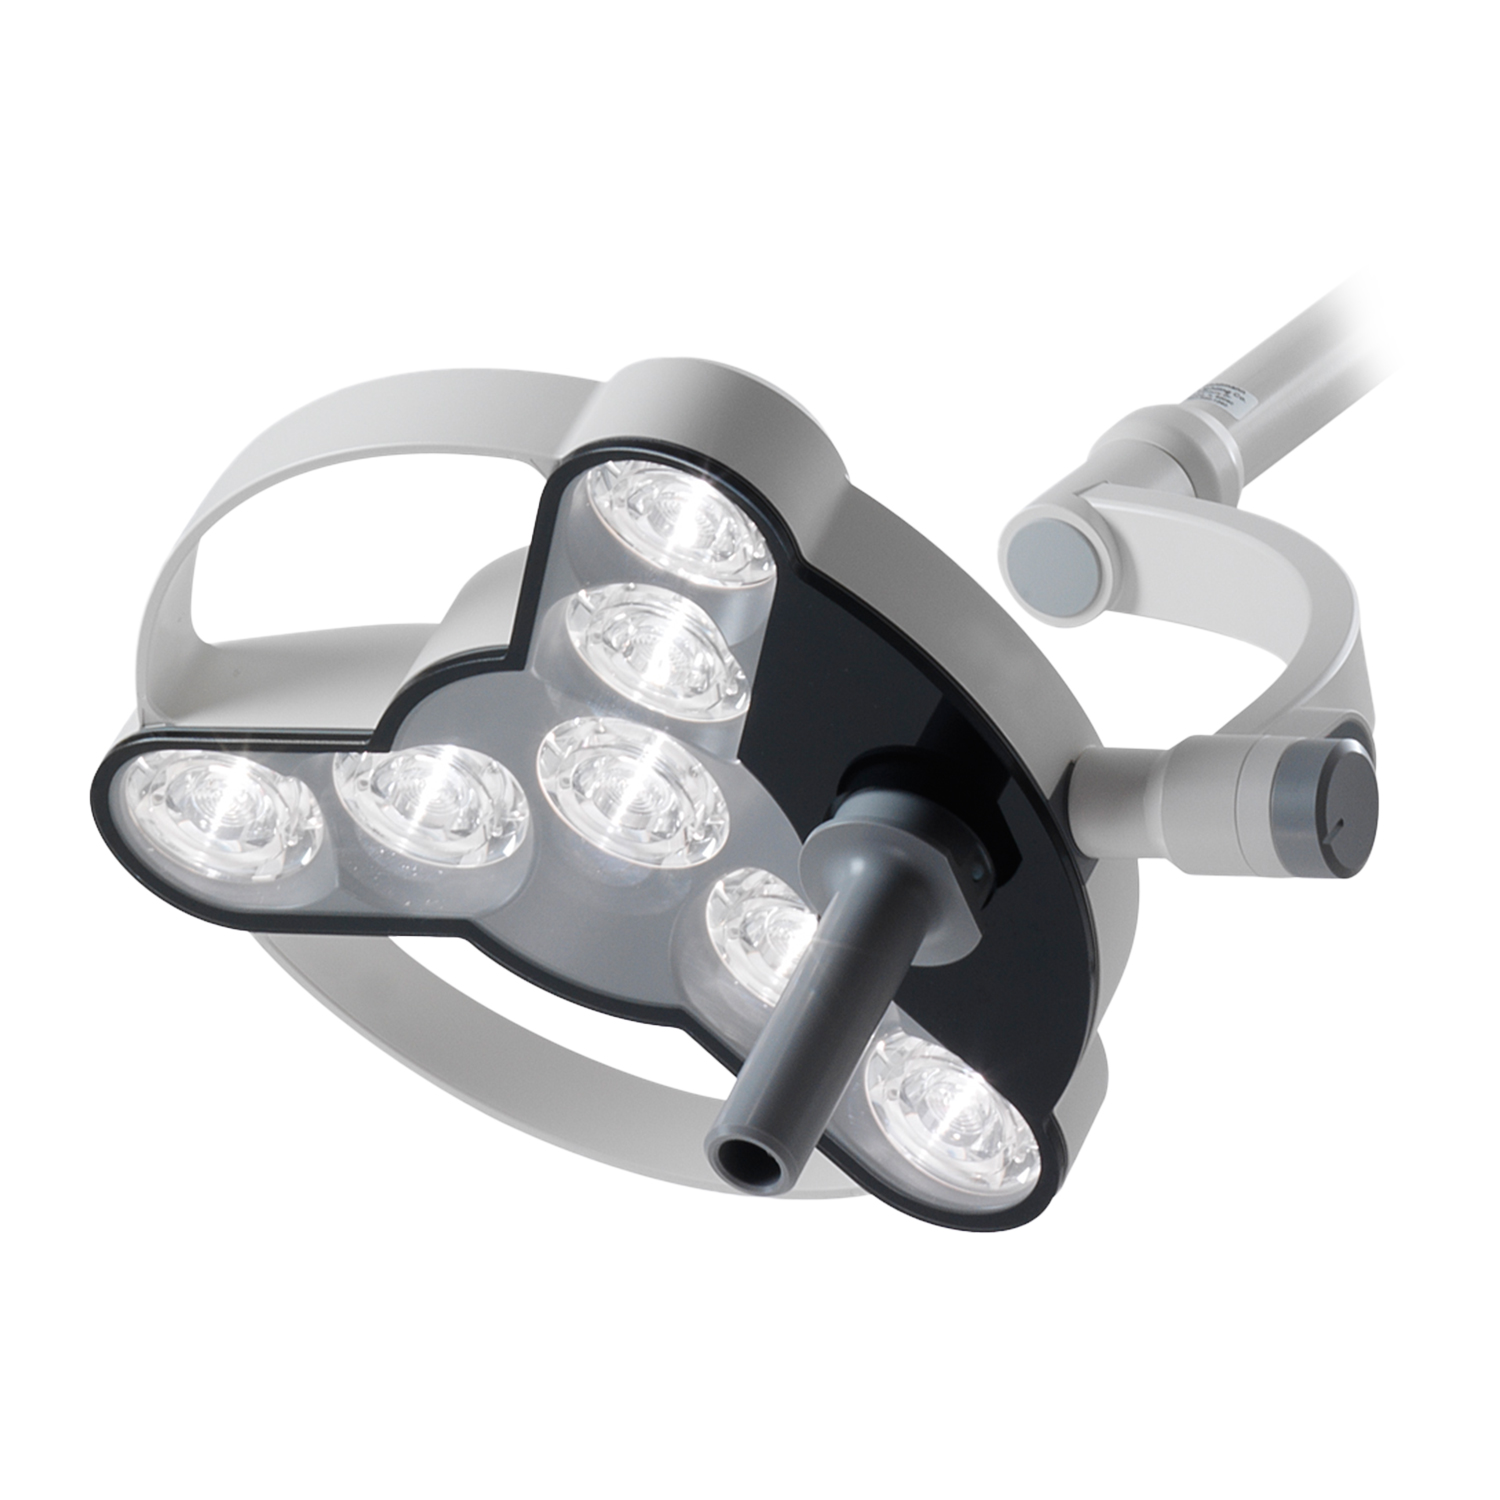 Avante Vision T3 LED Surgery Light